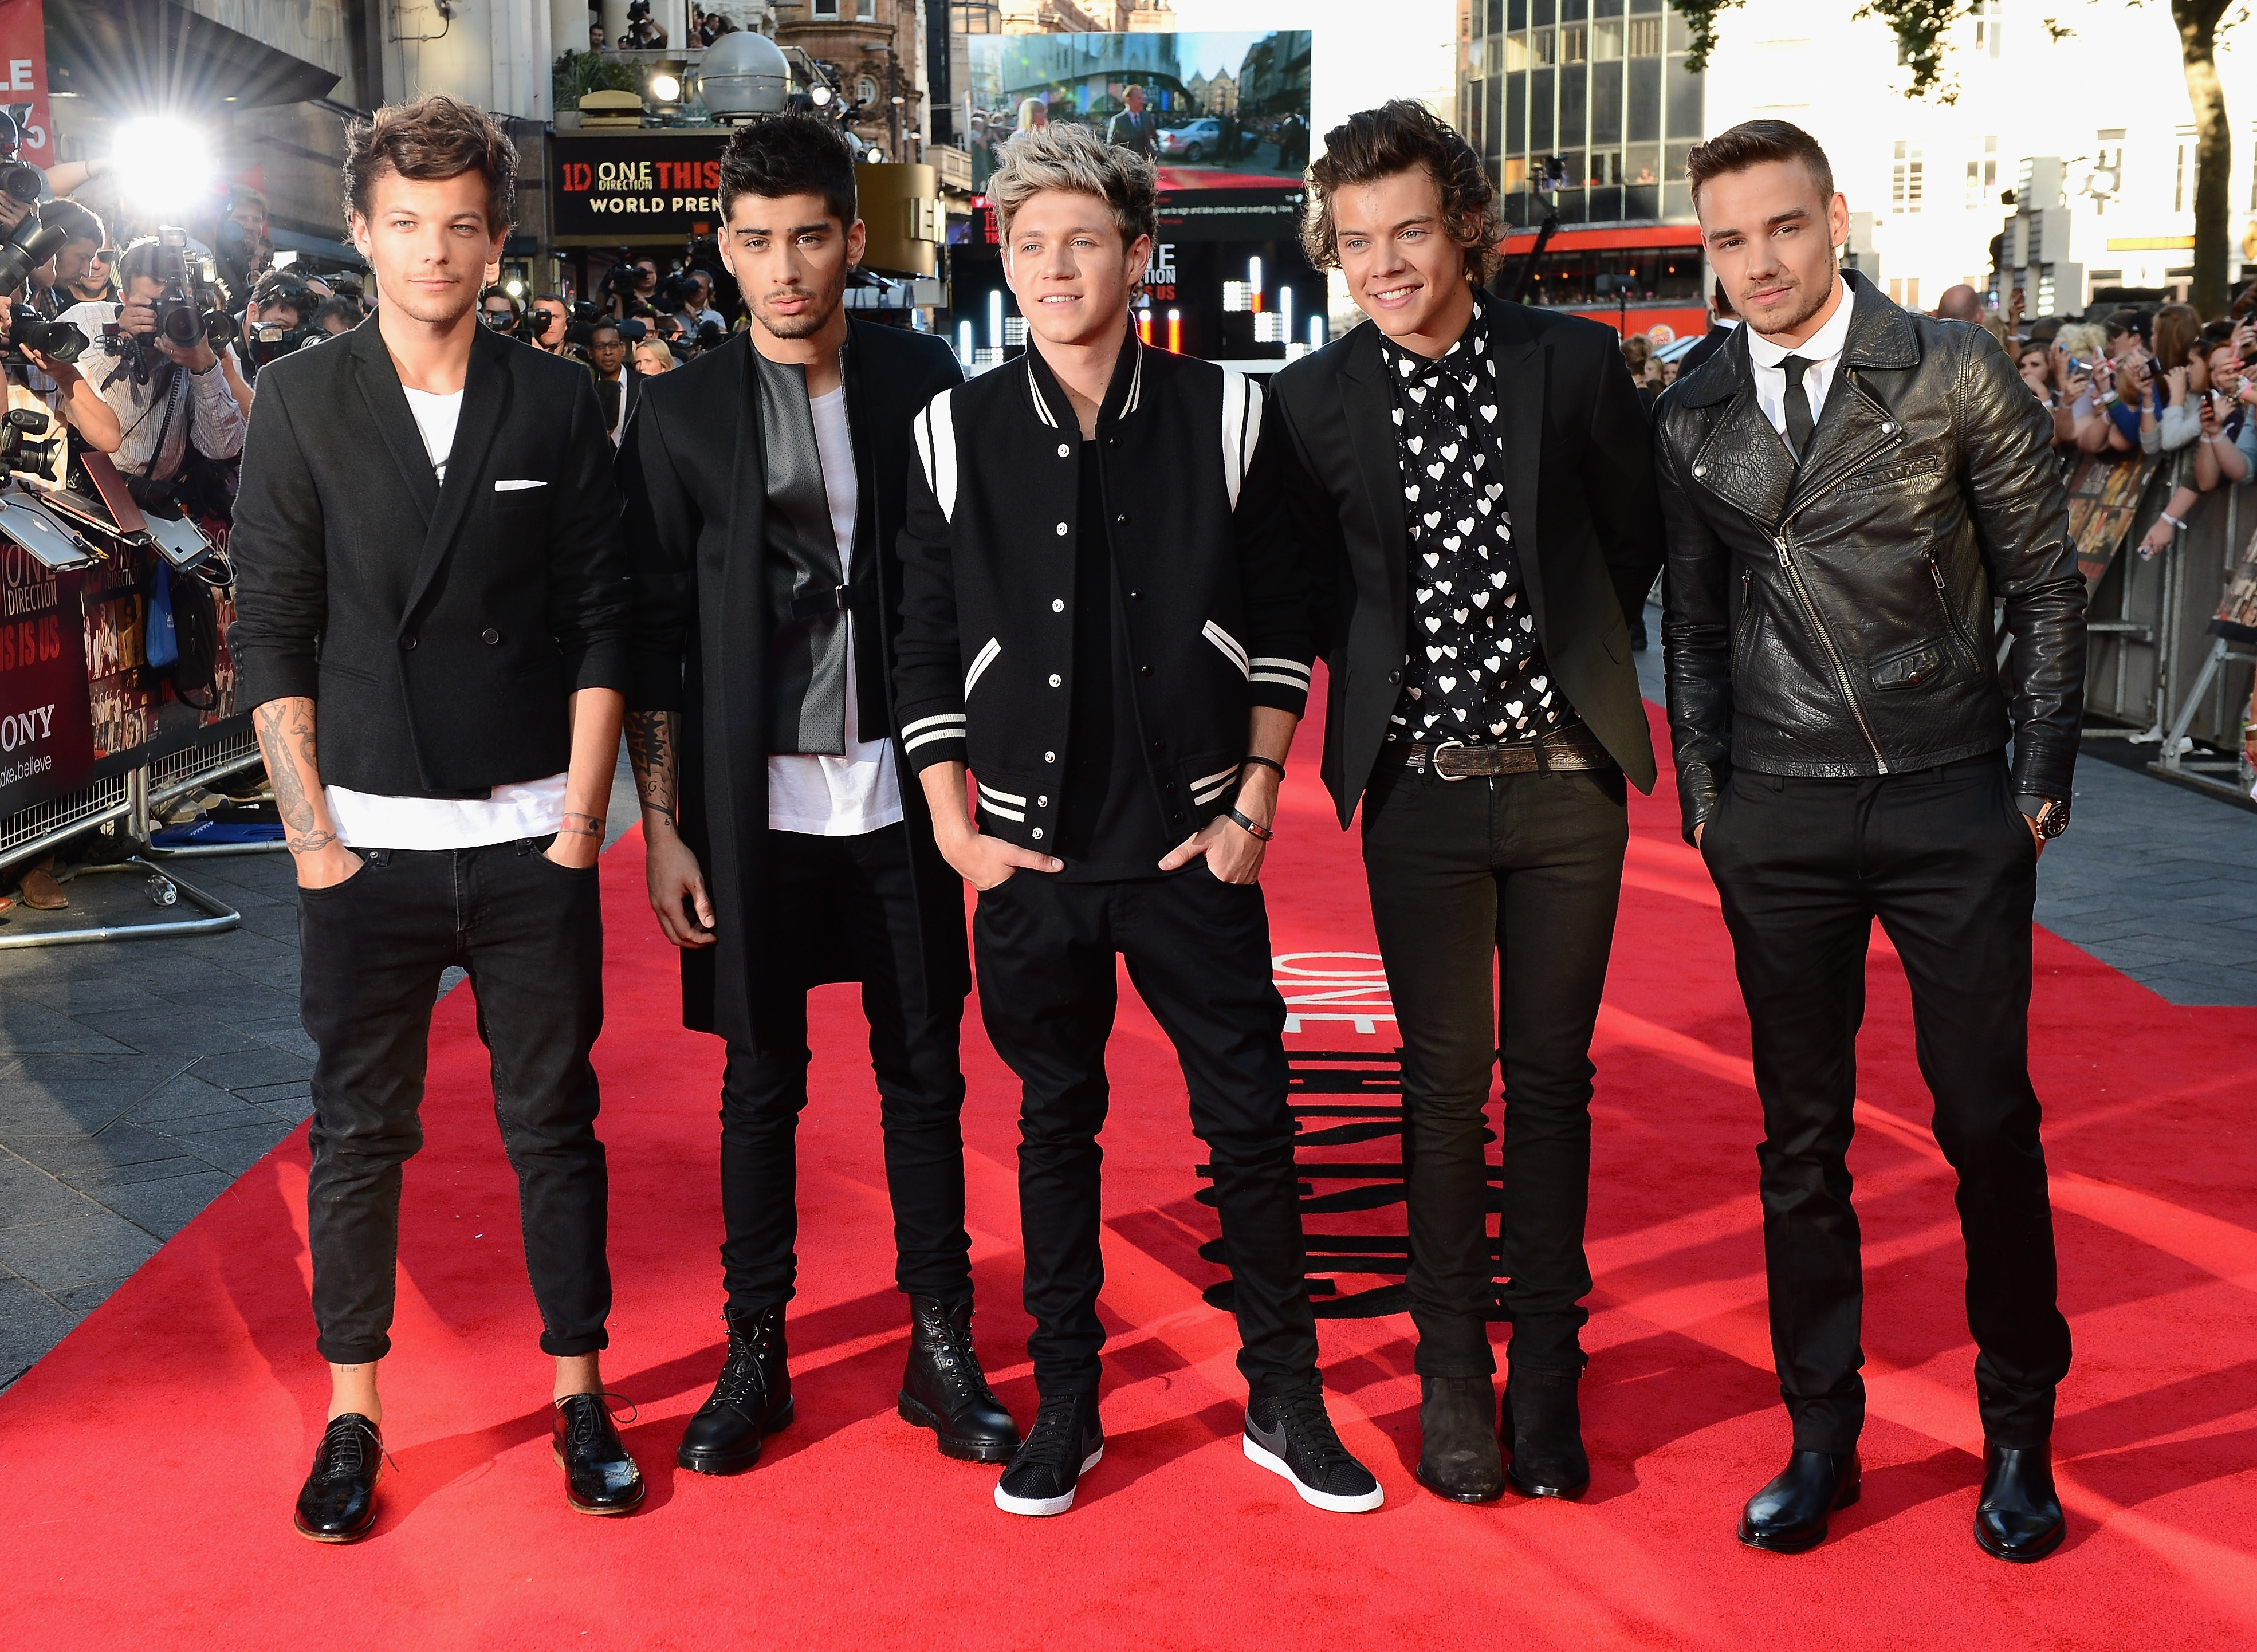 """From left, Louis Tomlinson, Zayn Malik, Niall Horan, Harry Styles and Liam Payne of One Direction attend the """"One Direction This Is Us"""" world premiere at the Empire Leicester Square this week in London."""